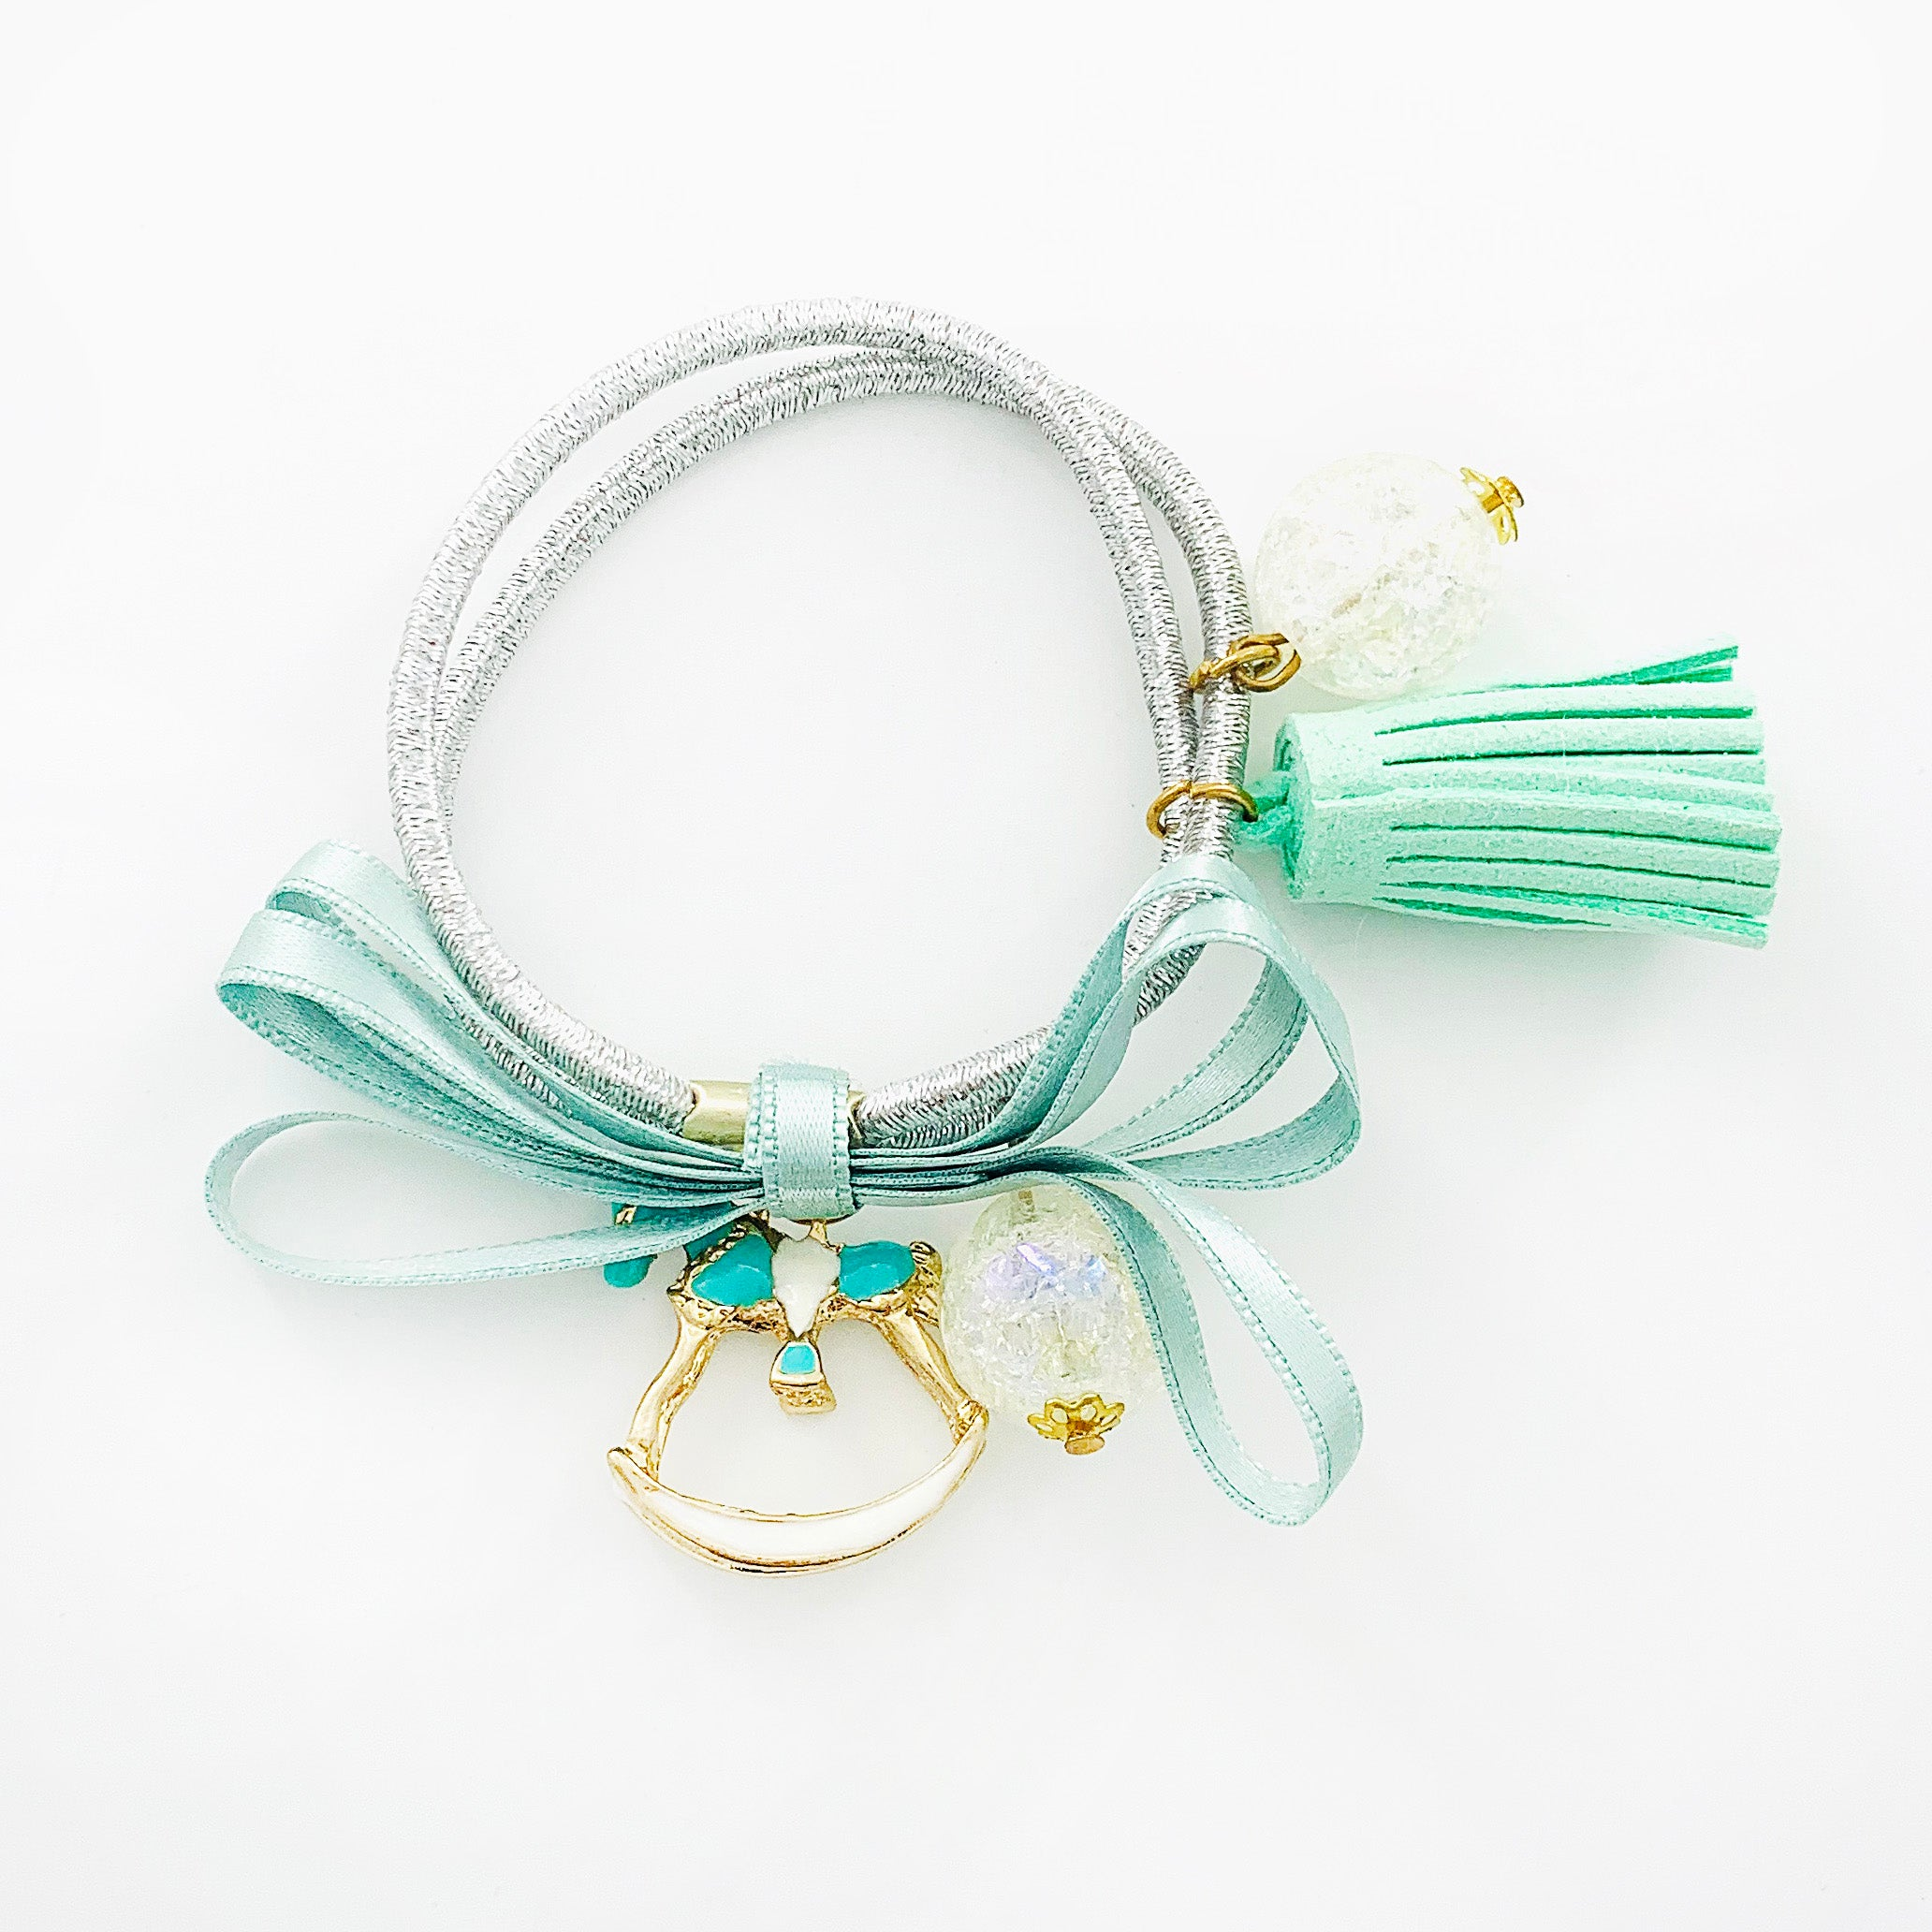 Hair tie with Mint Green tassel and gold horse charm